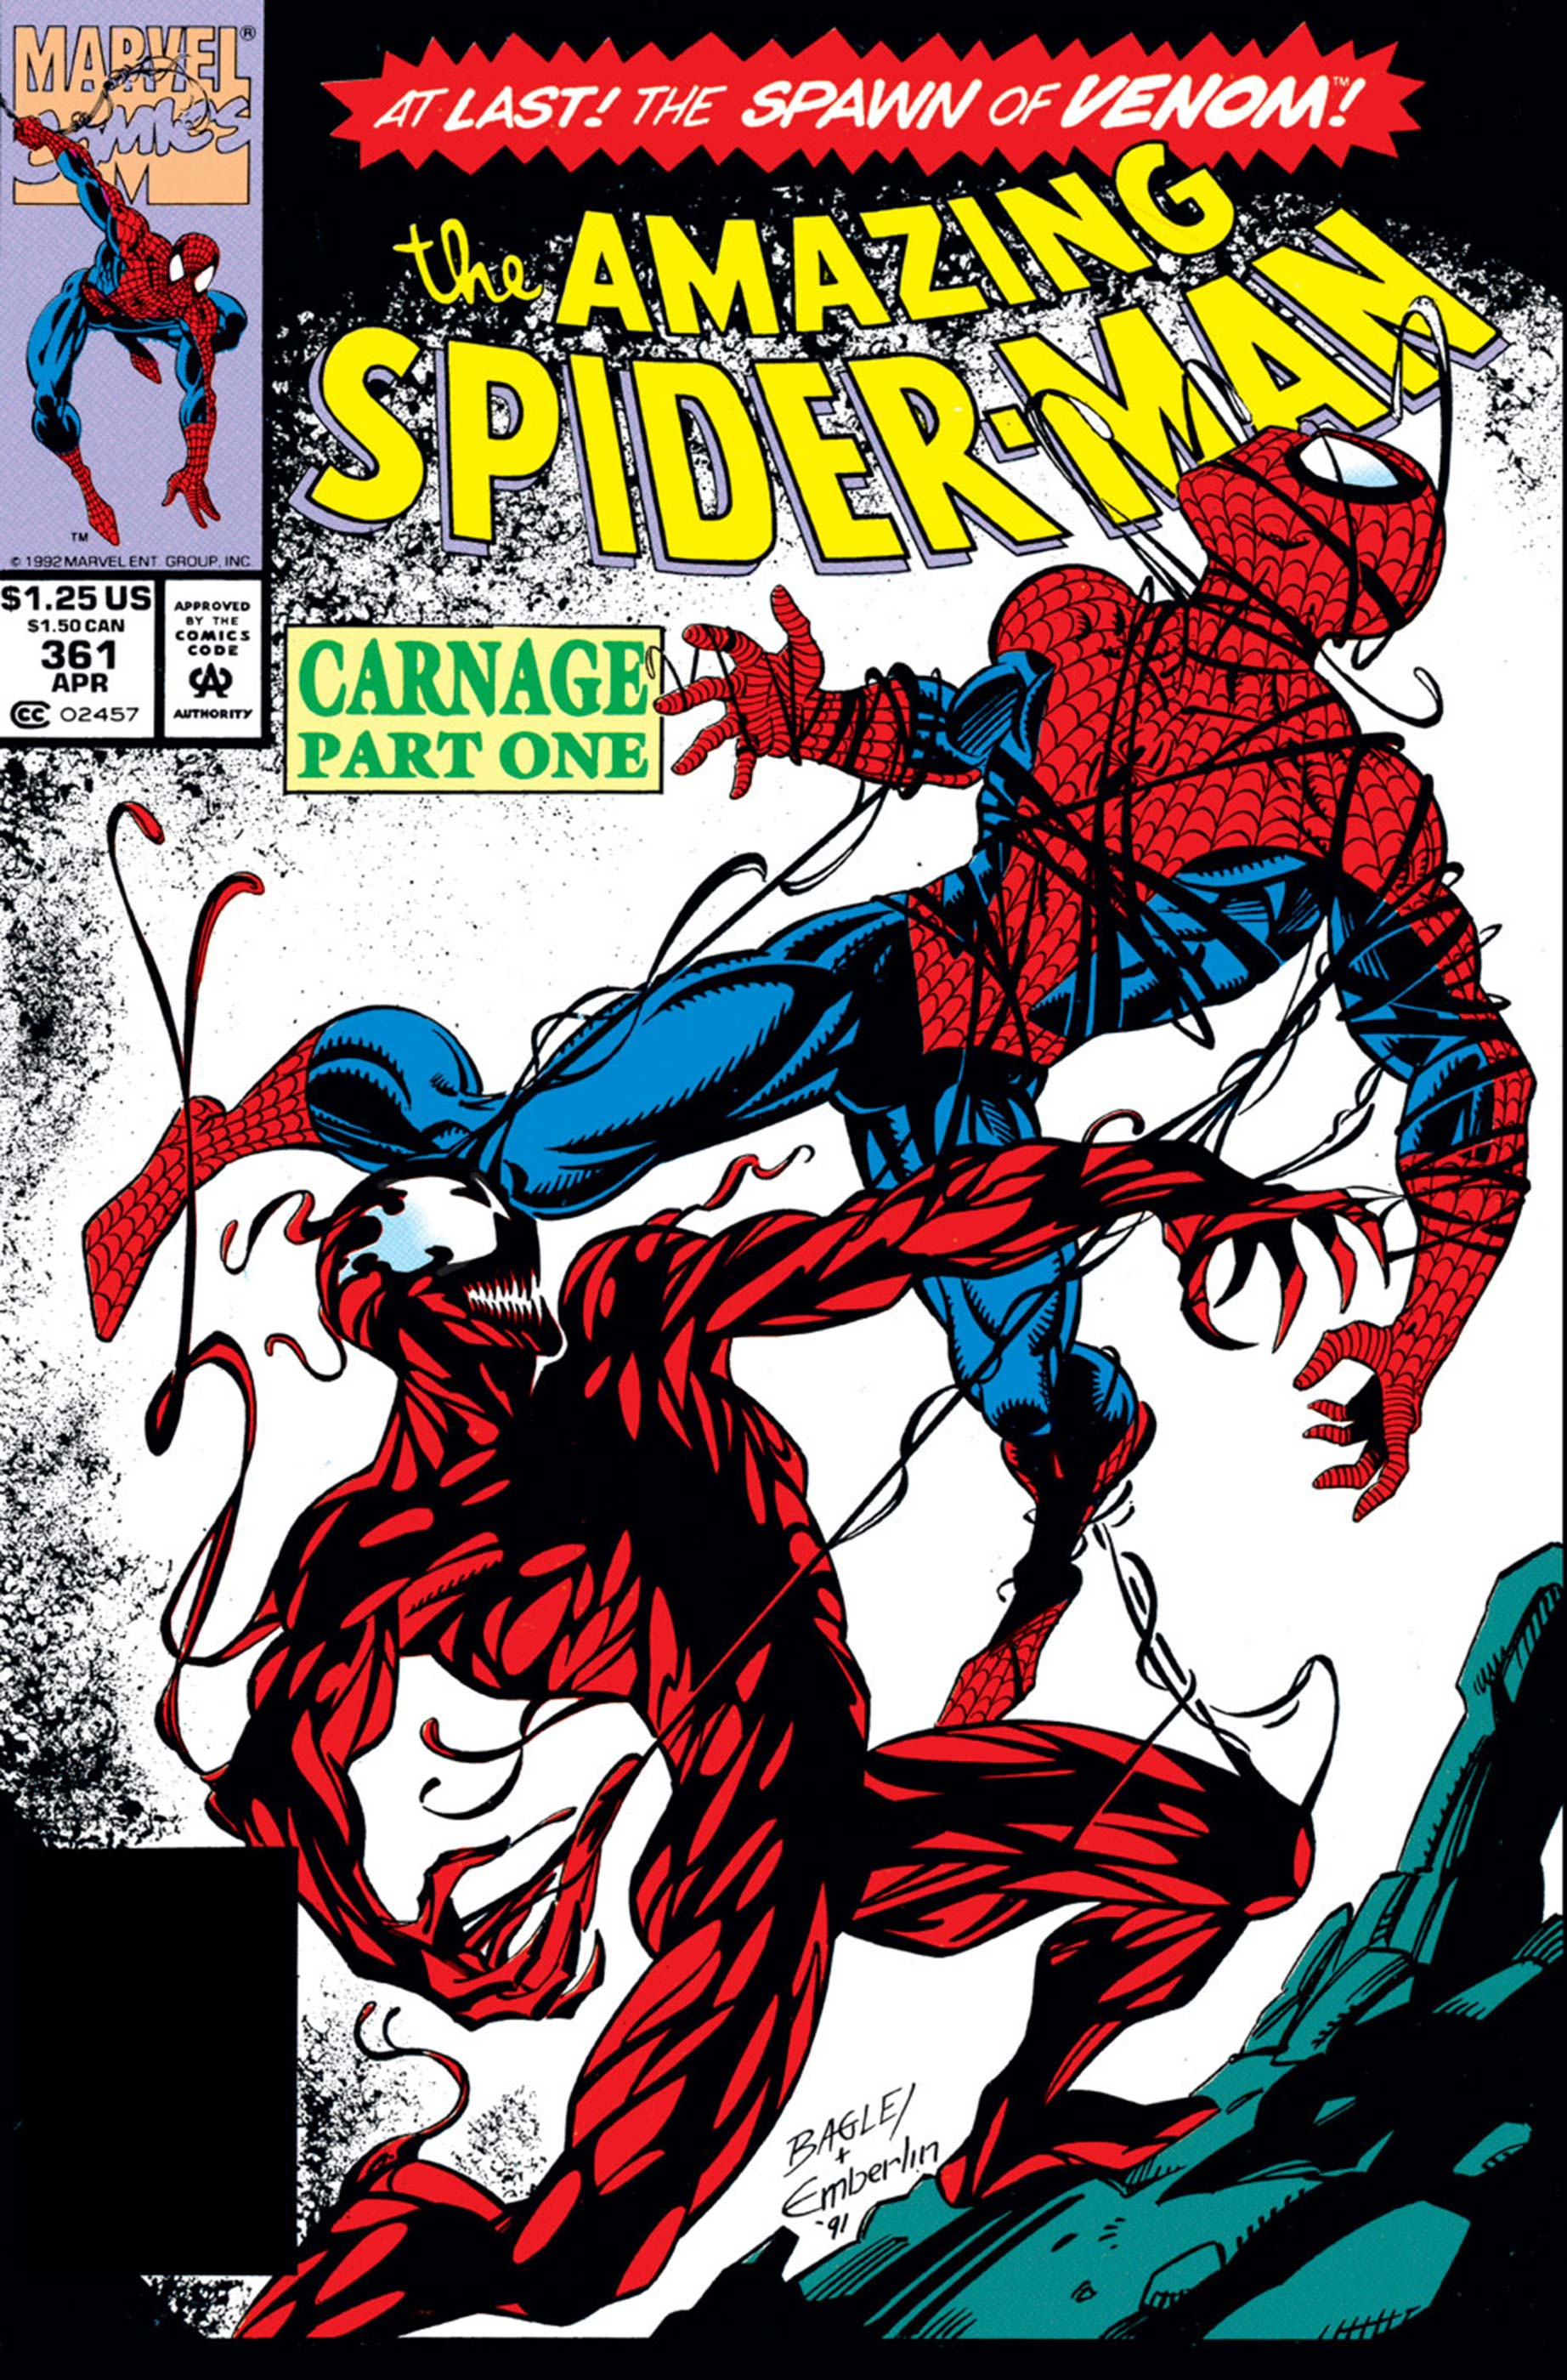 The Amazing Spider-Man (1963) #361